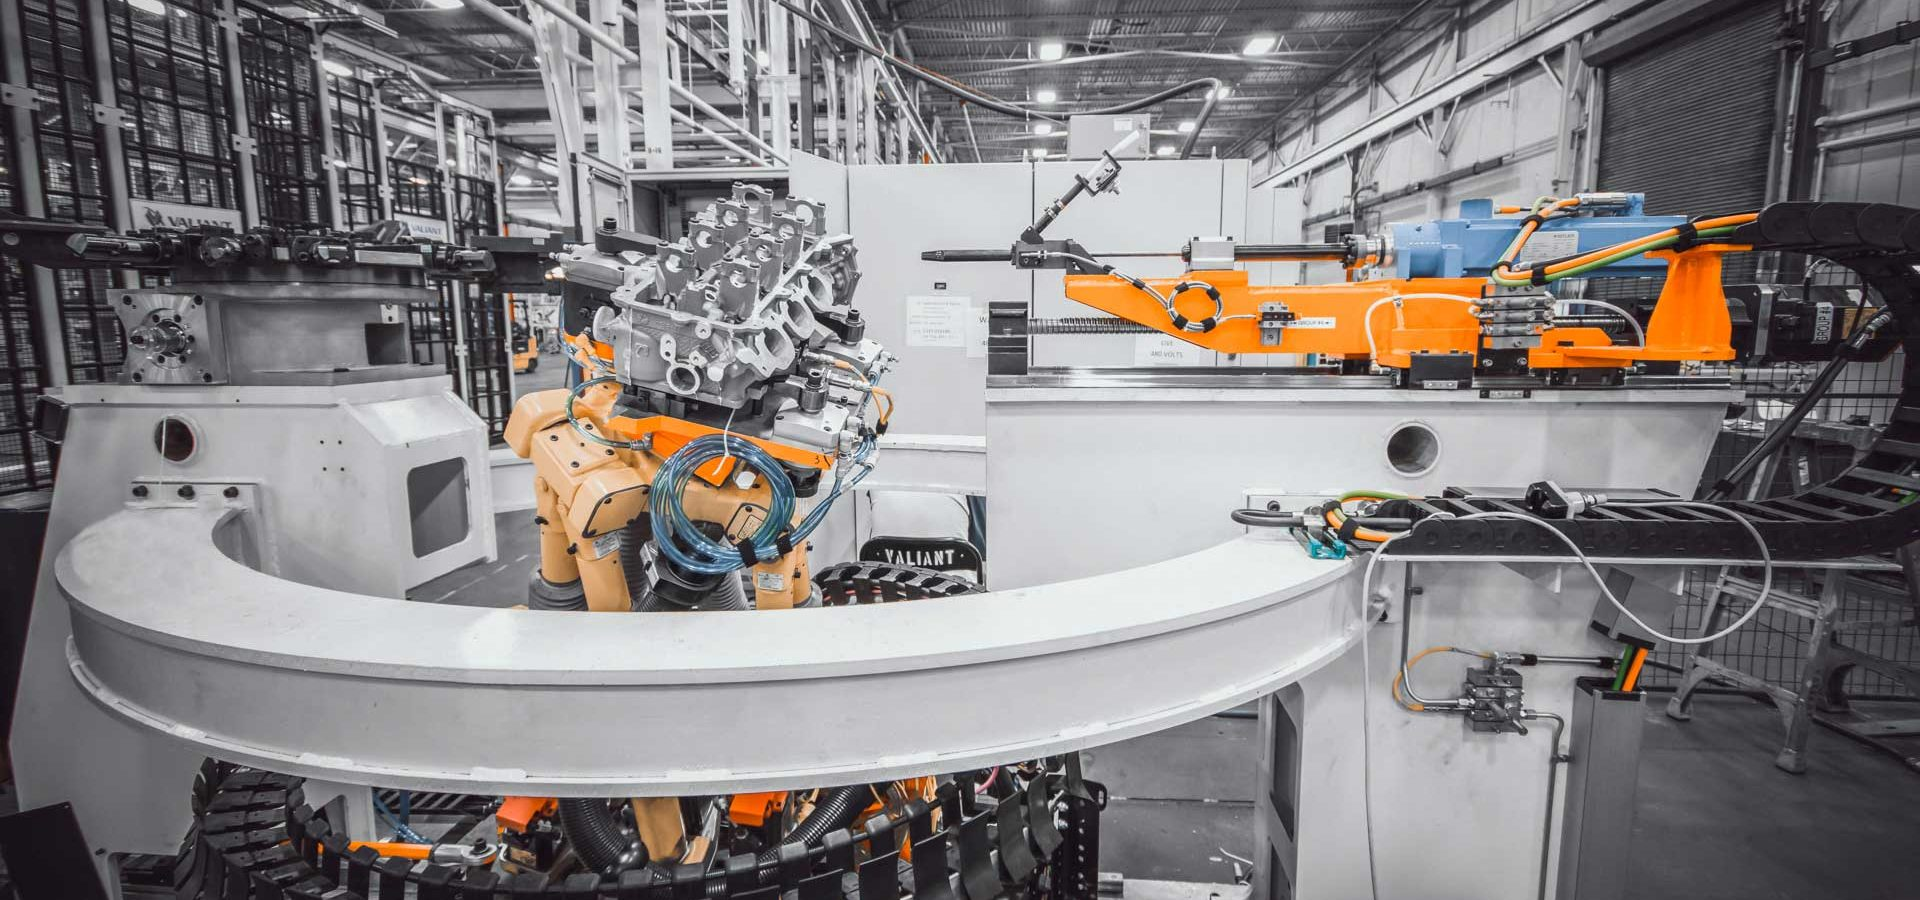 Valiant TMS - Automotive - Ancilliary Equipment - Flexible Assembly Robot - Cylinder Head Ball Press